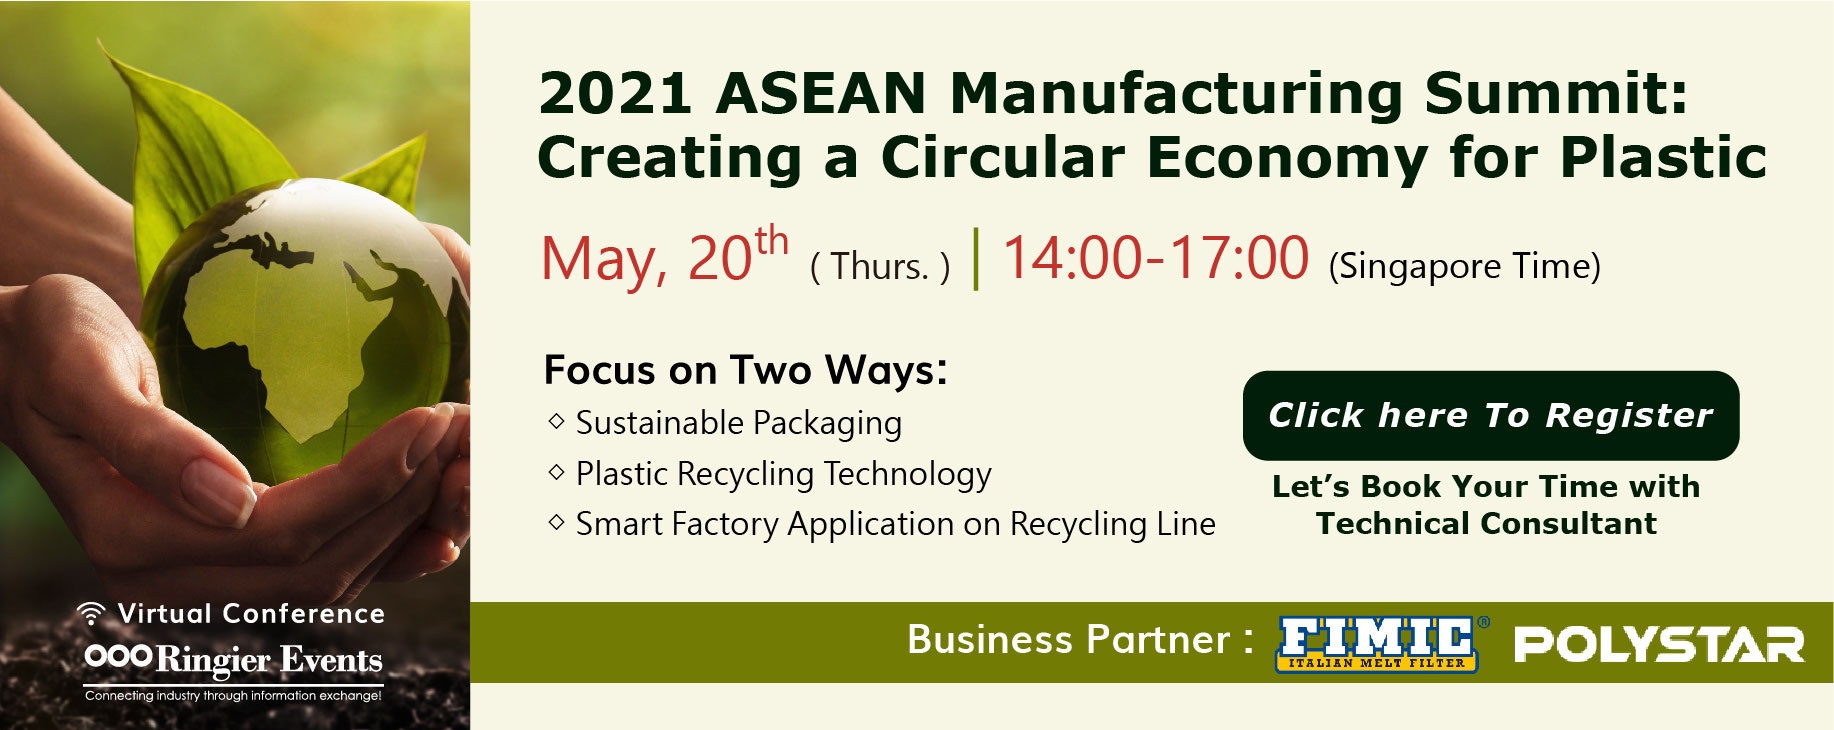 Virtual ASEAN Manufacturing Summit 2021: Creating a Circular Economy for Plastic